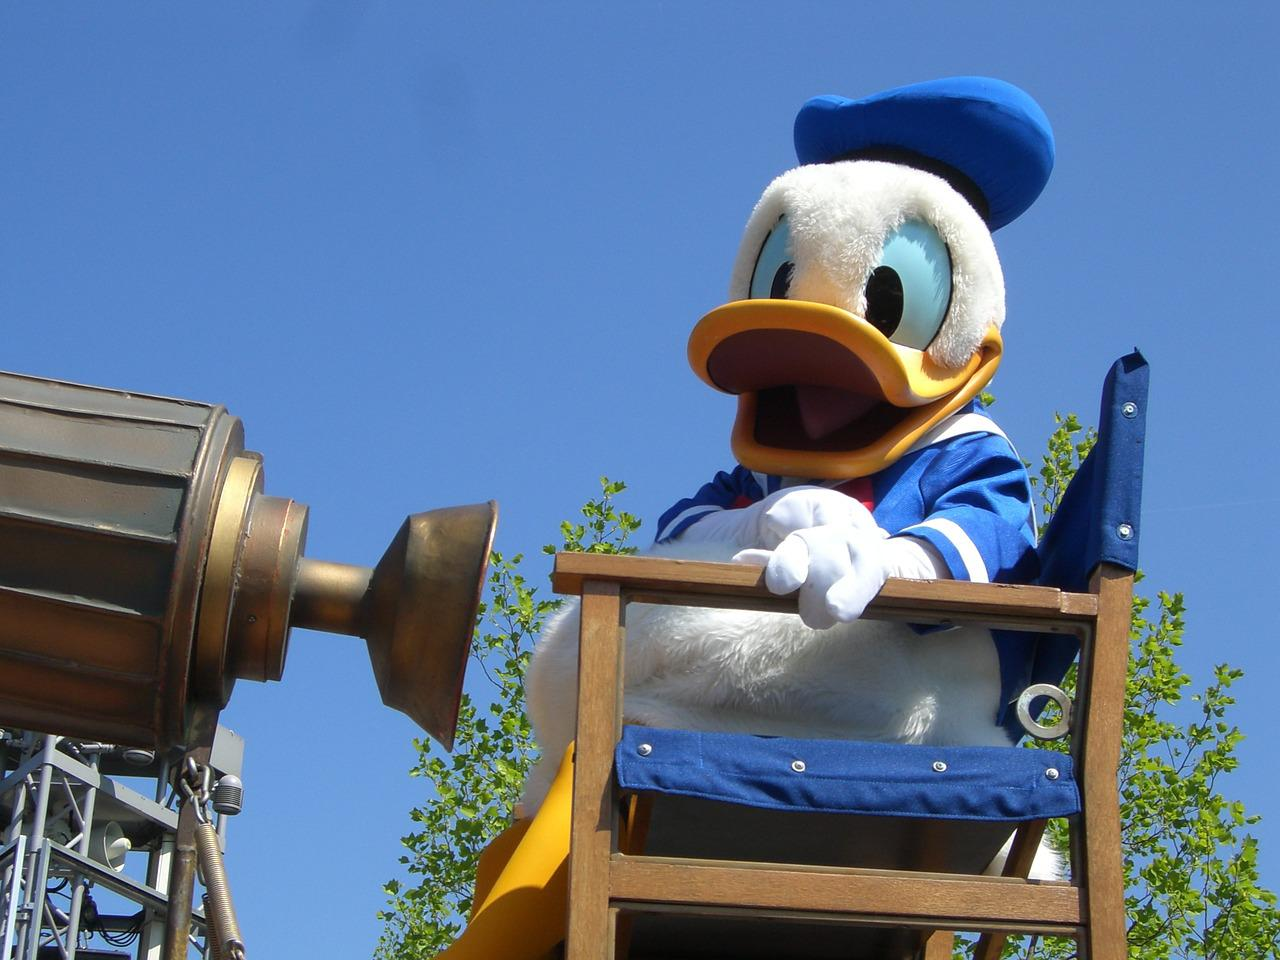 Donald Duck comics were banned from Finland because he doesn't wear pants.